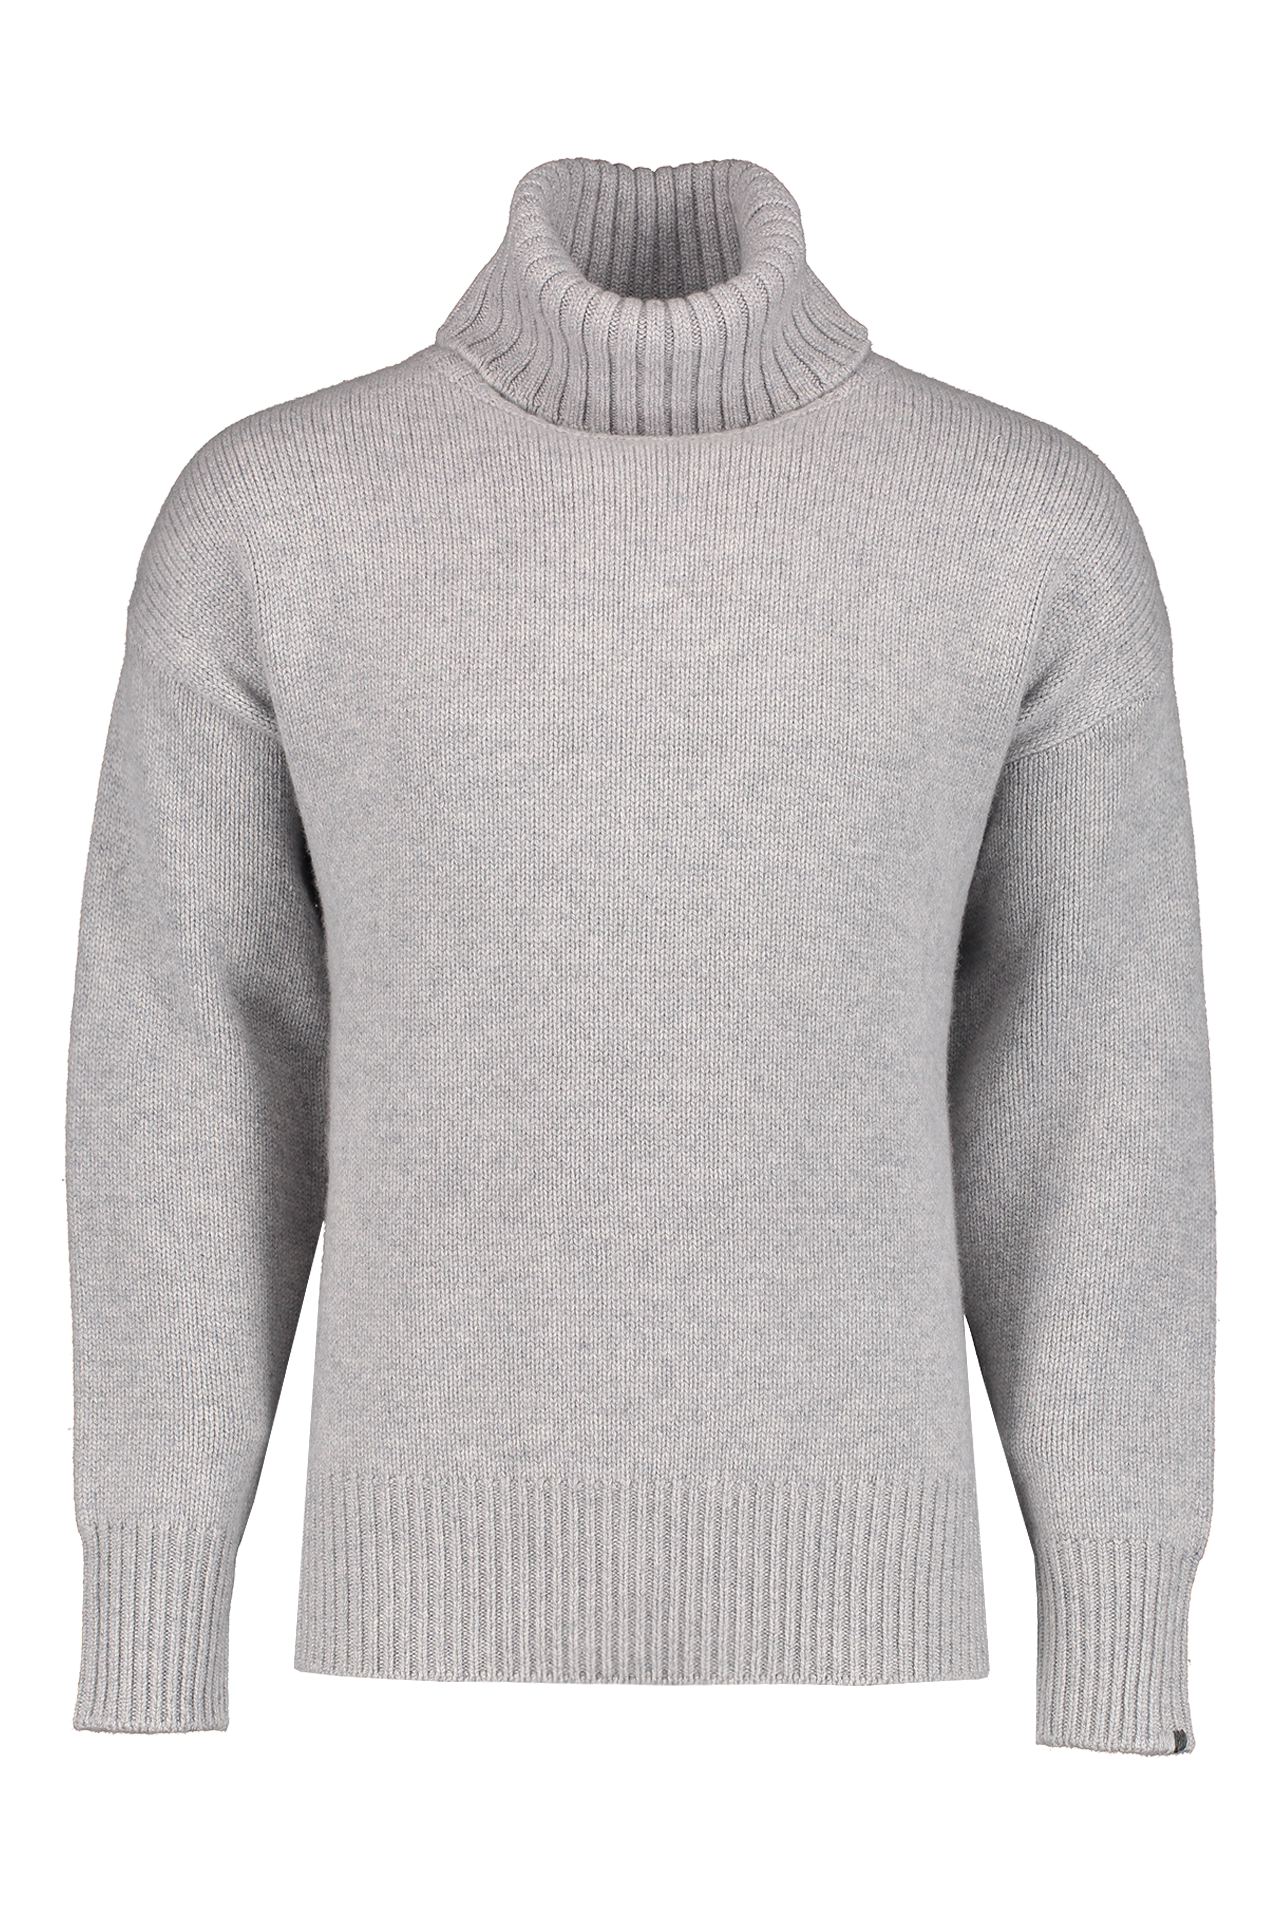 Front view image of Extreme Cashmere N°20 Oversize Xtra Sweater Grey